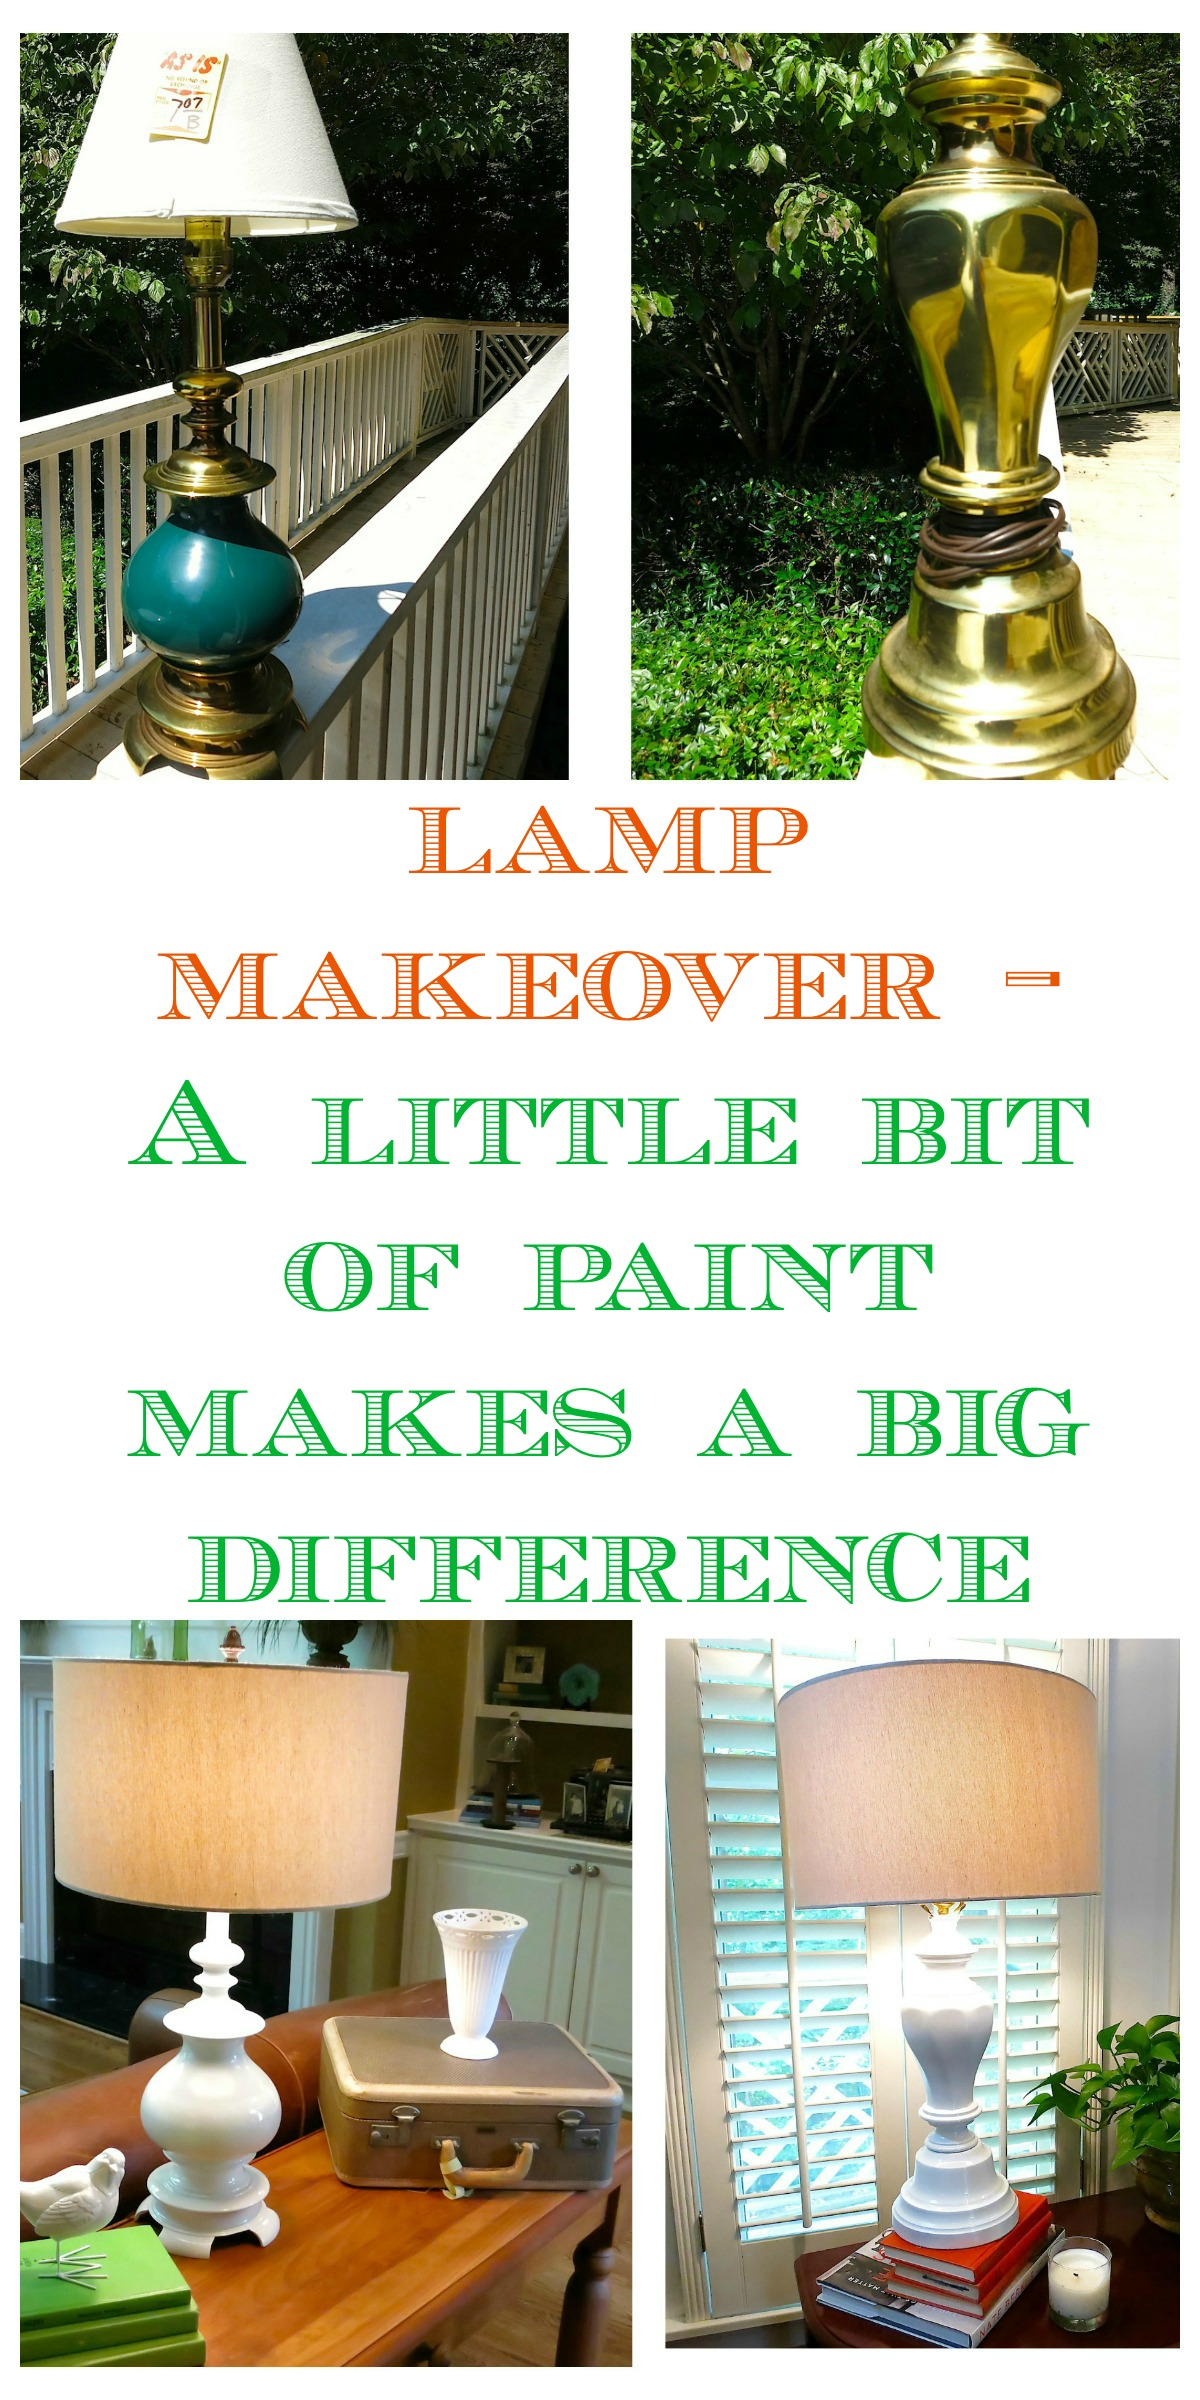 Lamp makeover - a little bit of paint makes a big difference!